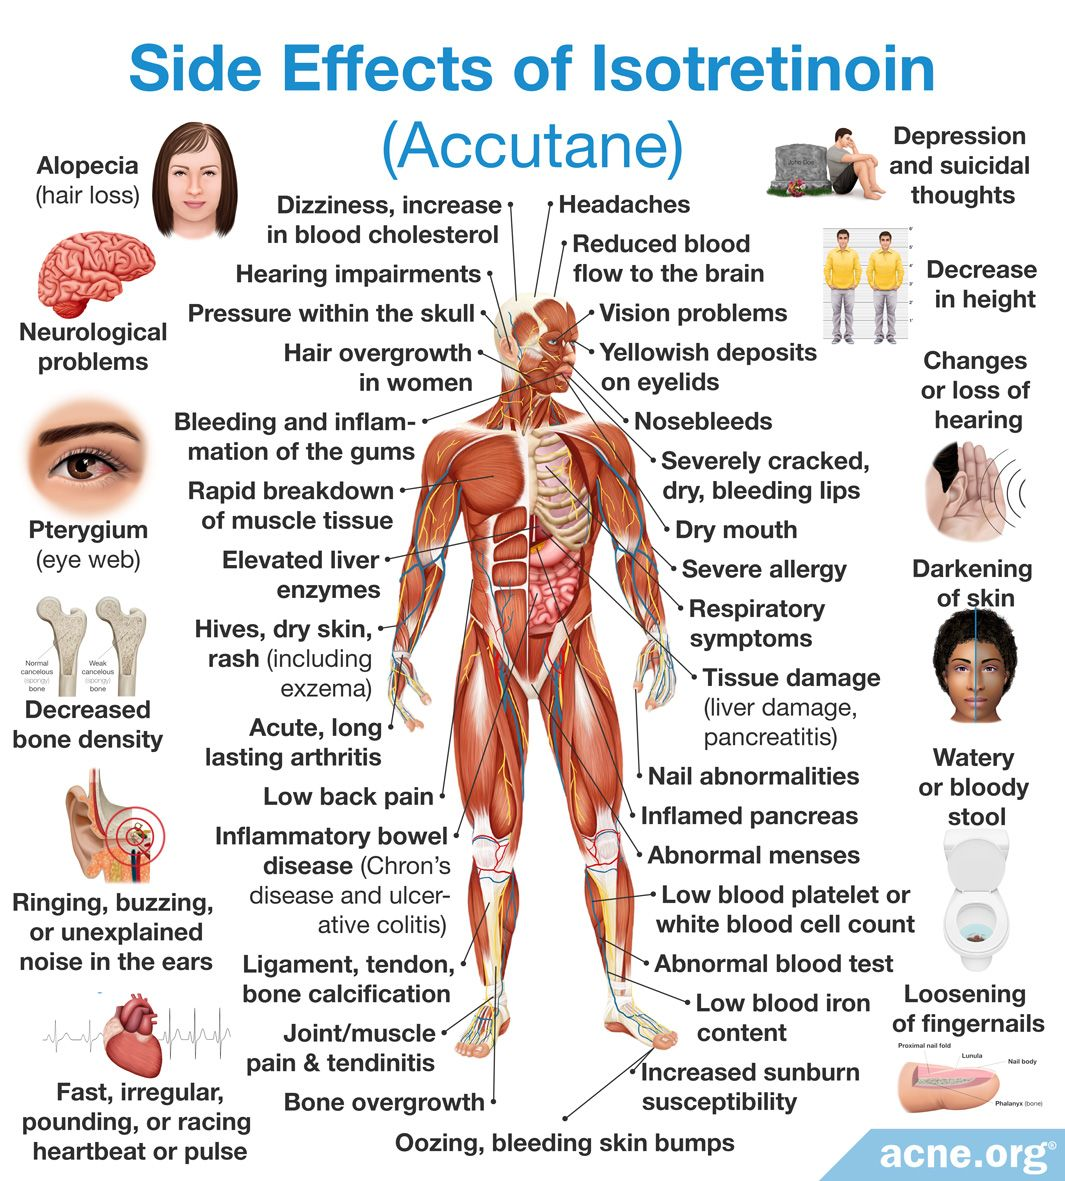 Side Effects of Isotretinoin Accutane